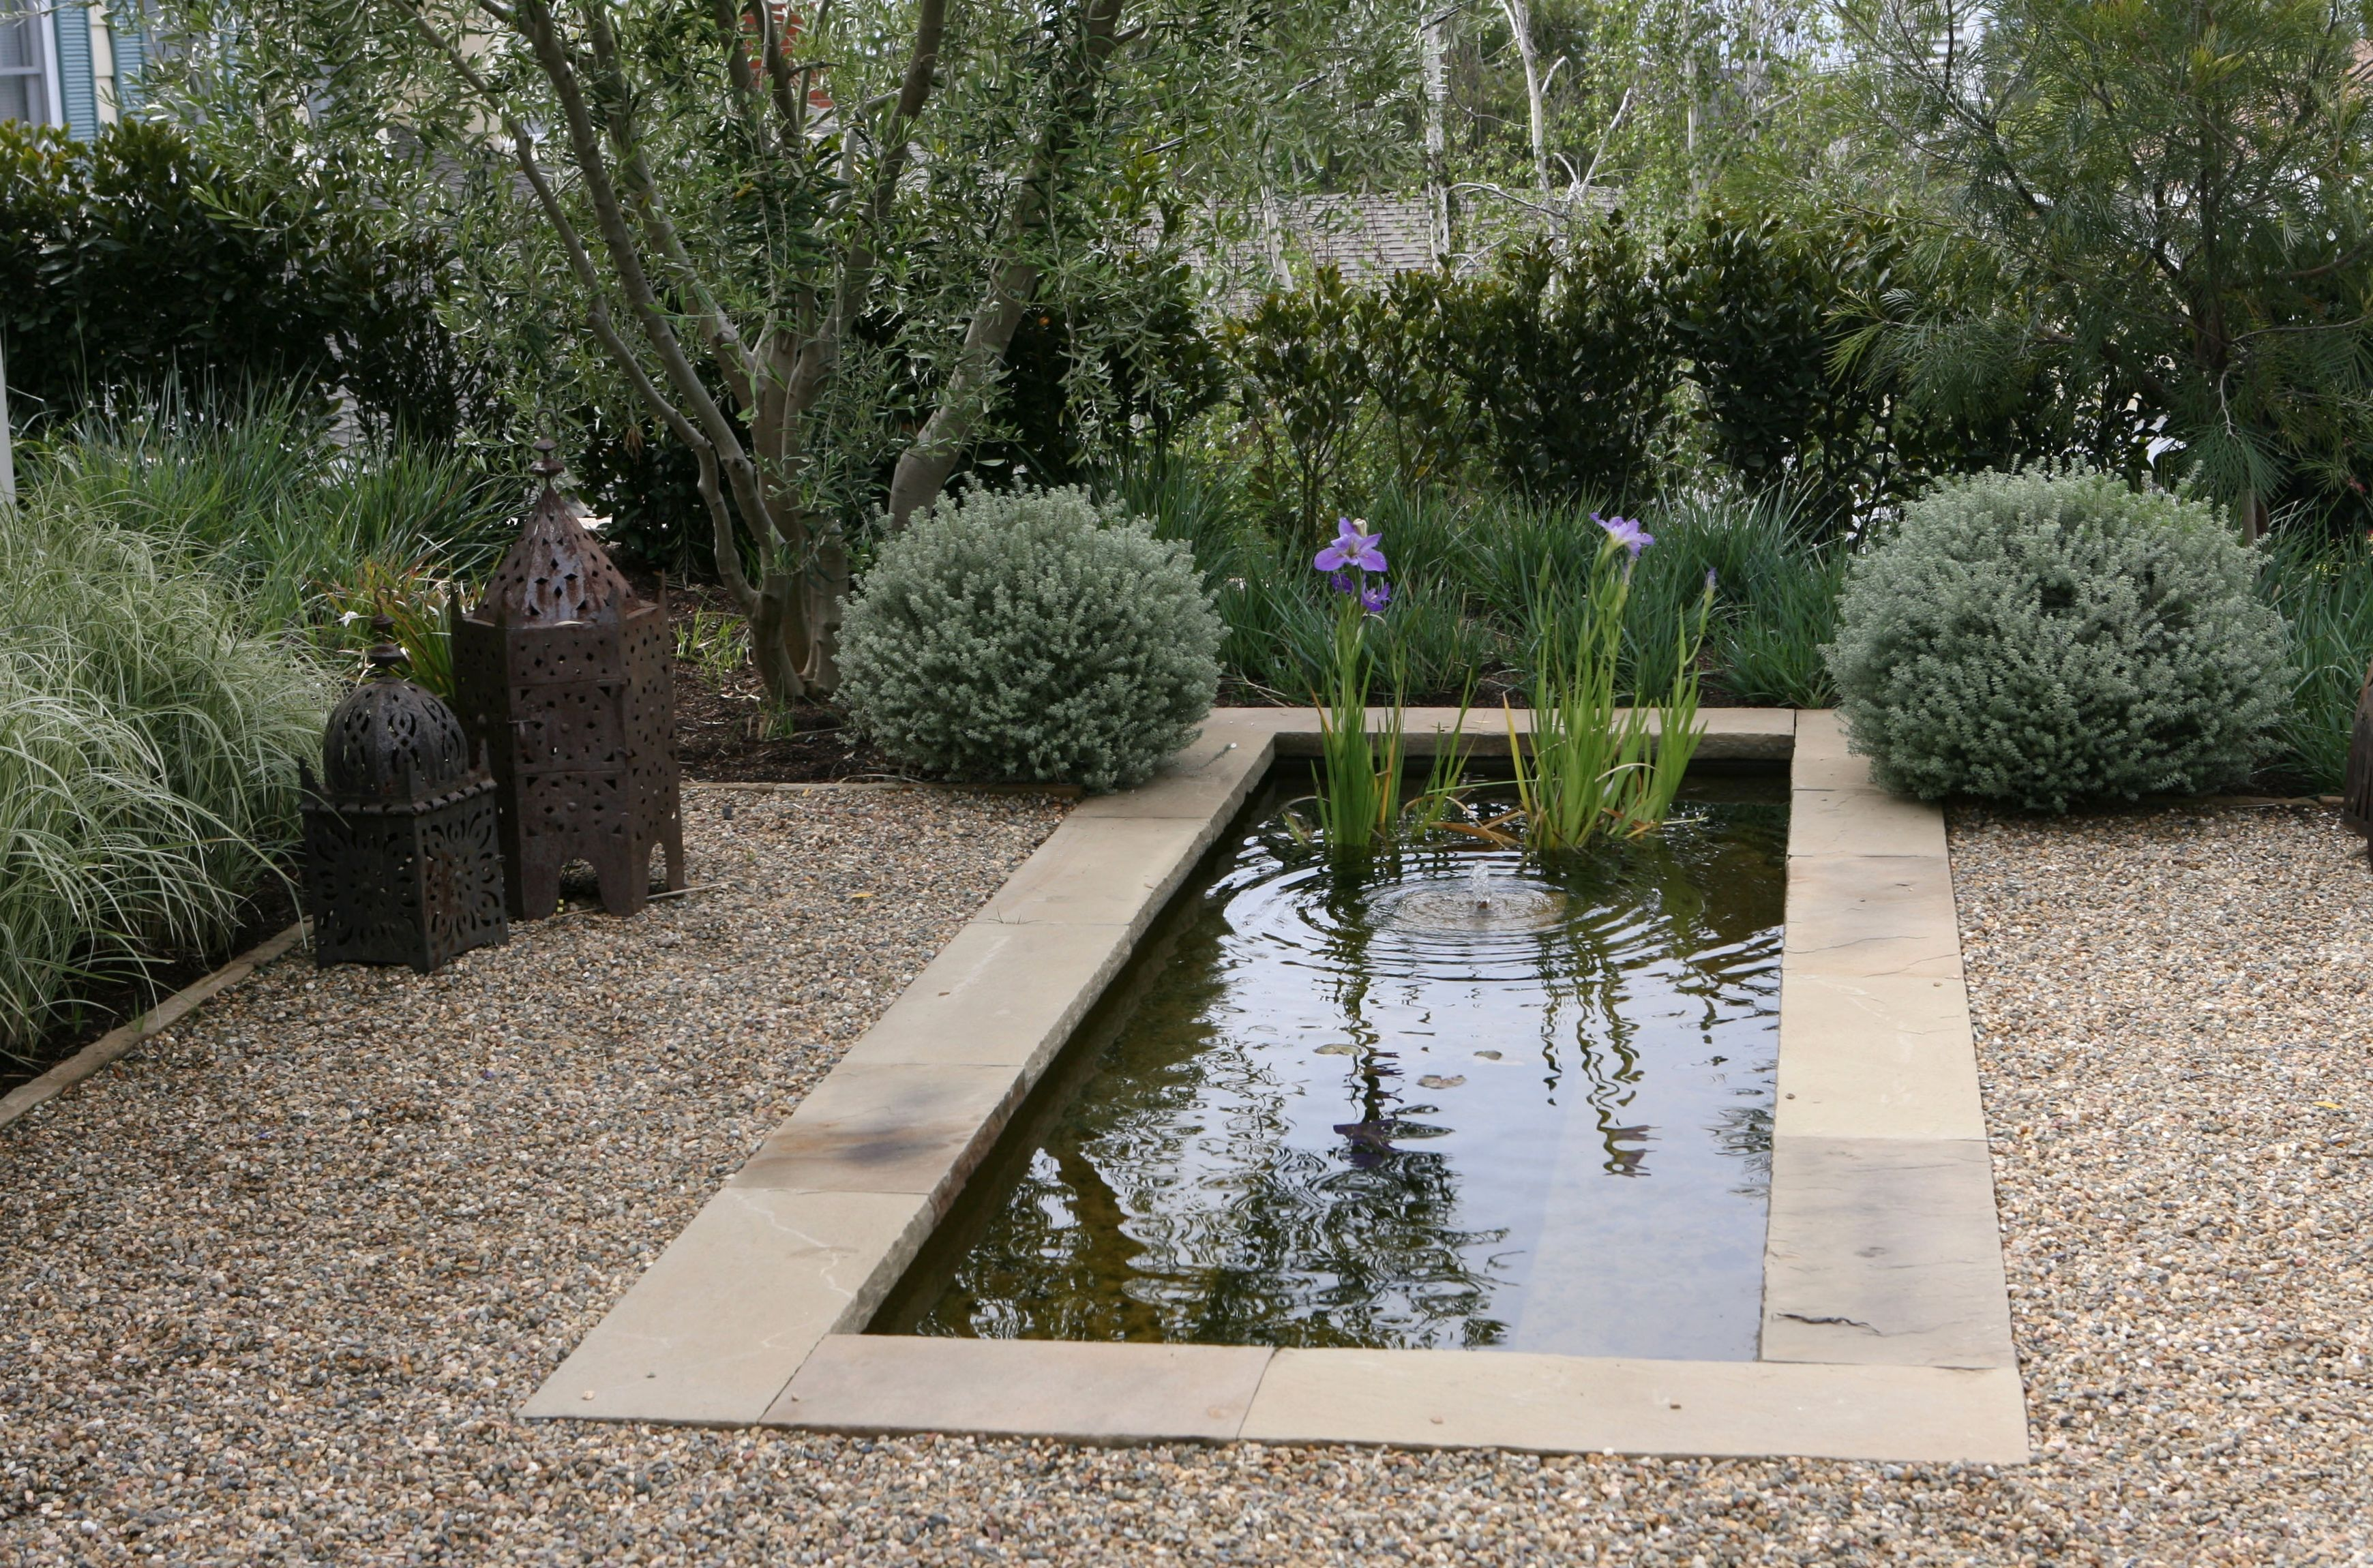 reflecting pool in a los angeles garden by joseph marek on backyard landscape architecture inspirations id=95624